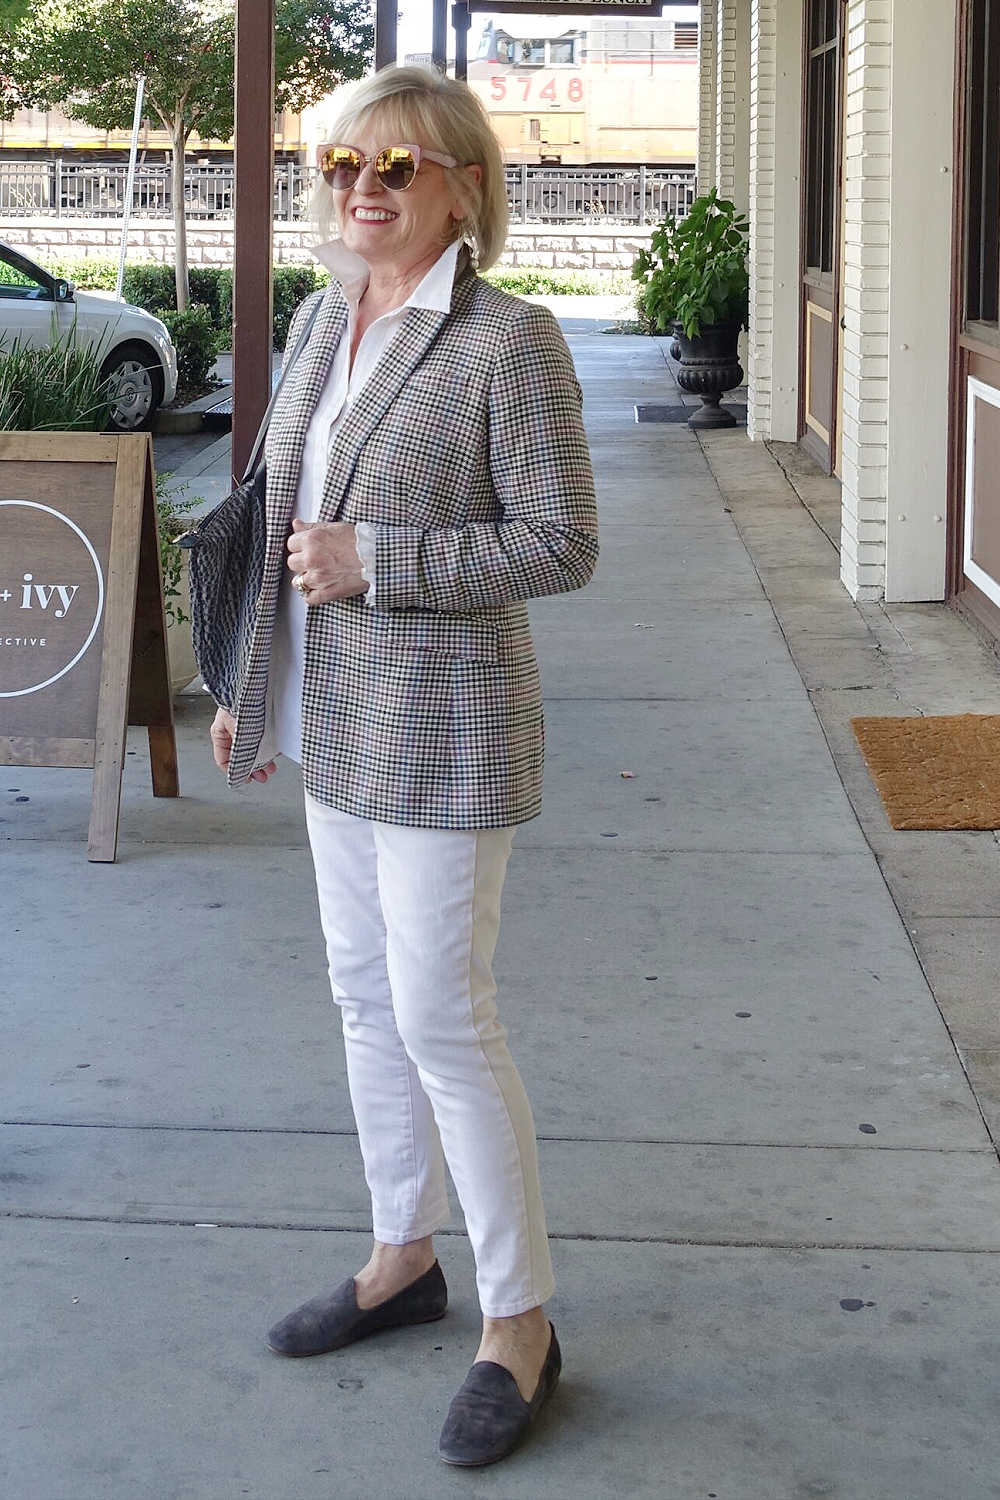 blinde woman wearing classy blazer and white jeans